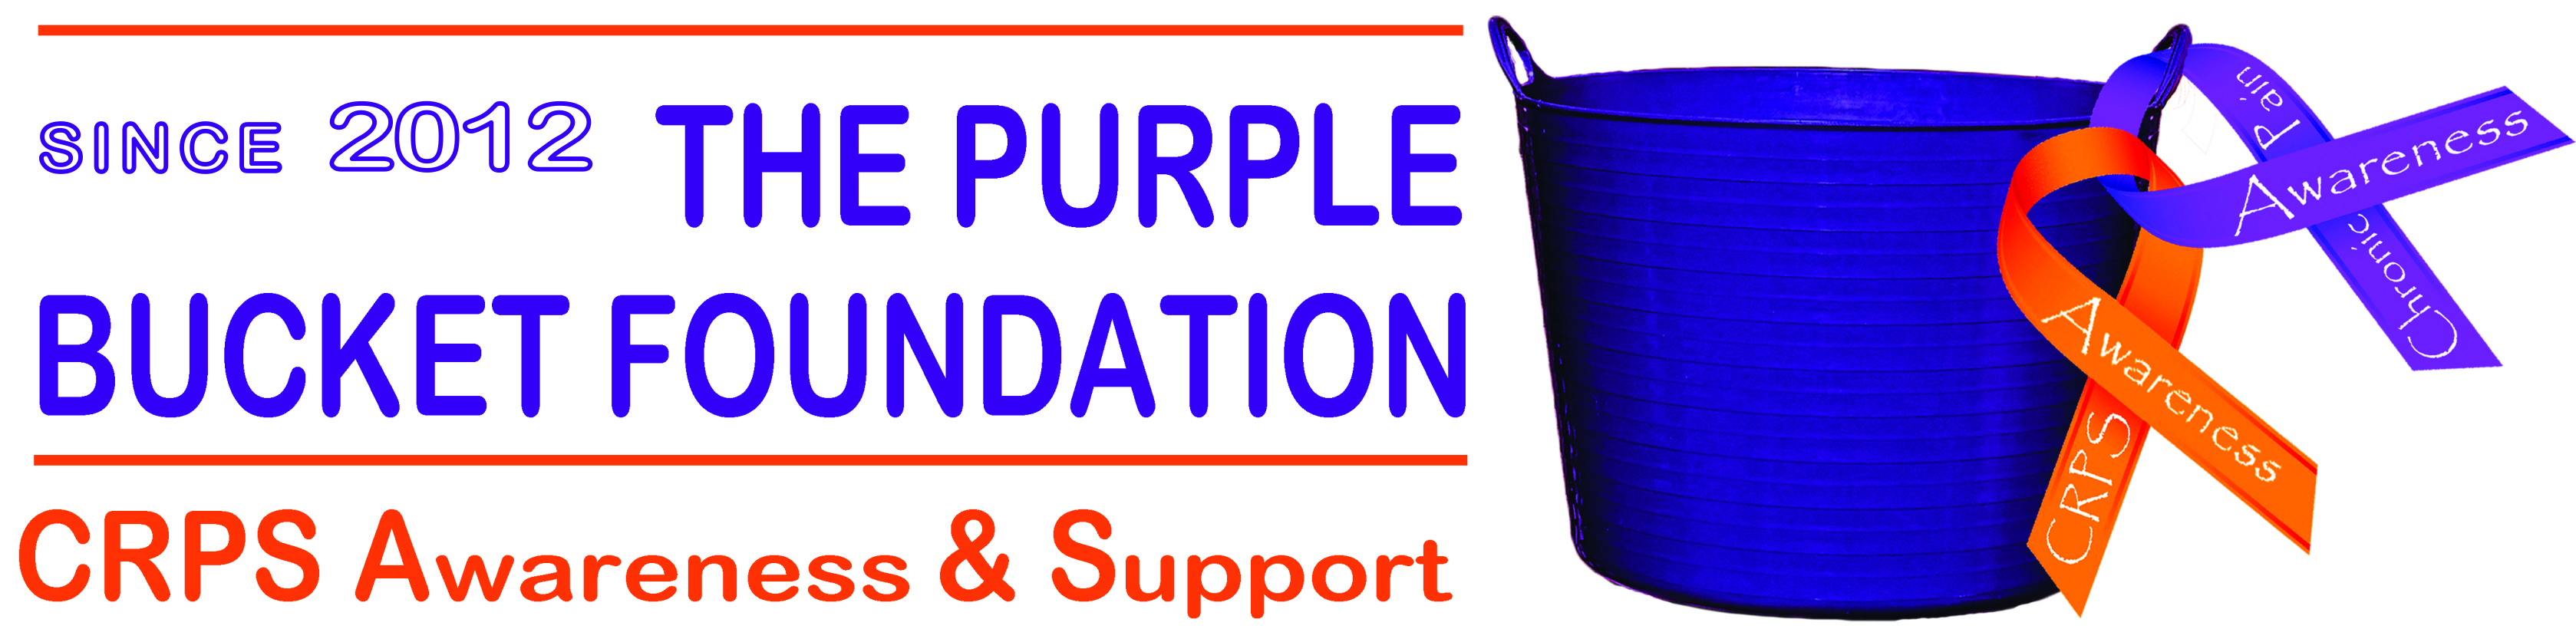 Purple Bucket Foundation